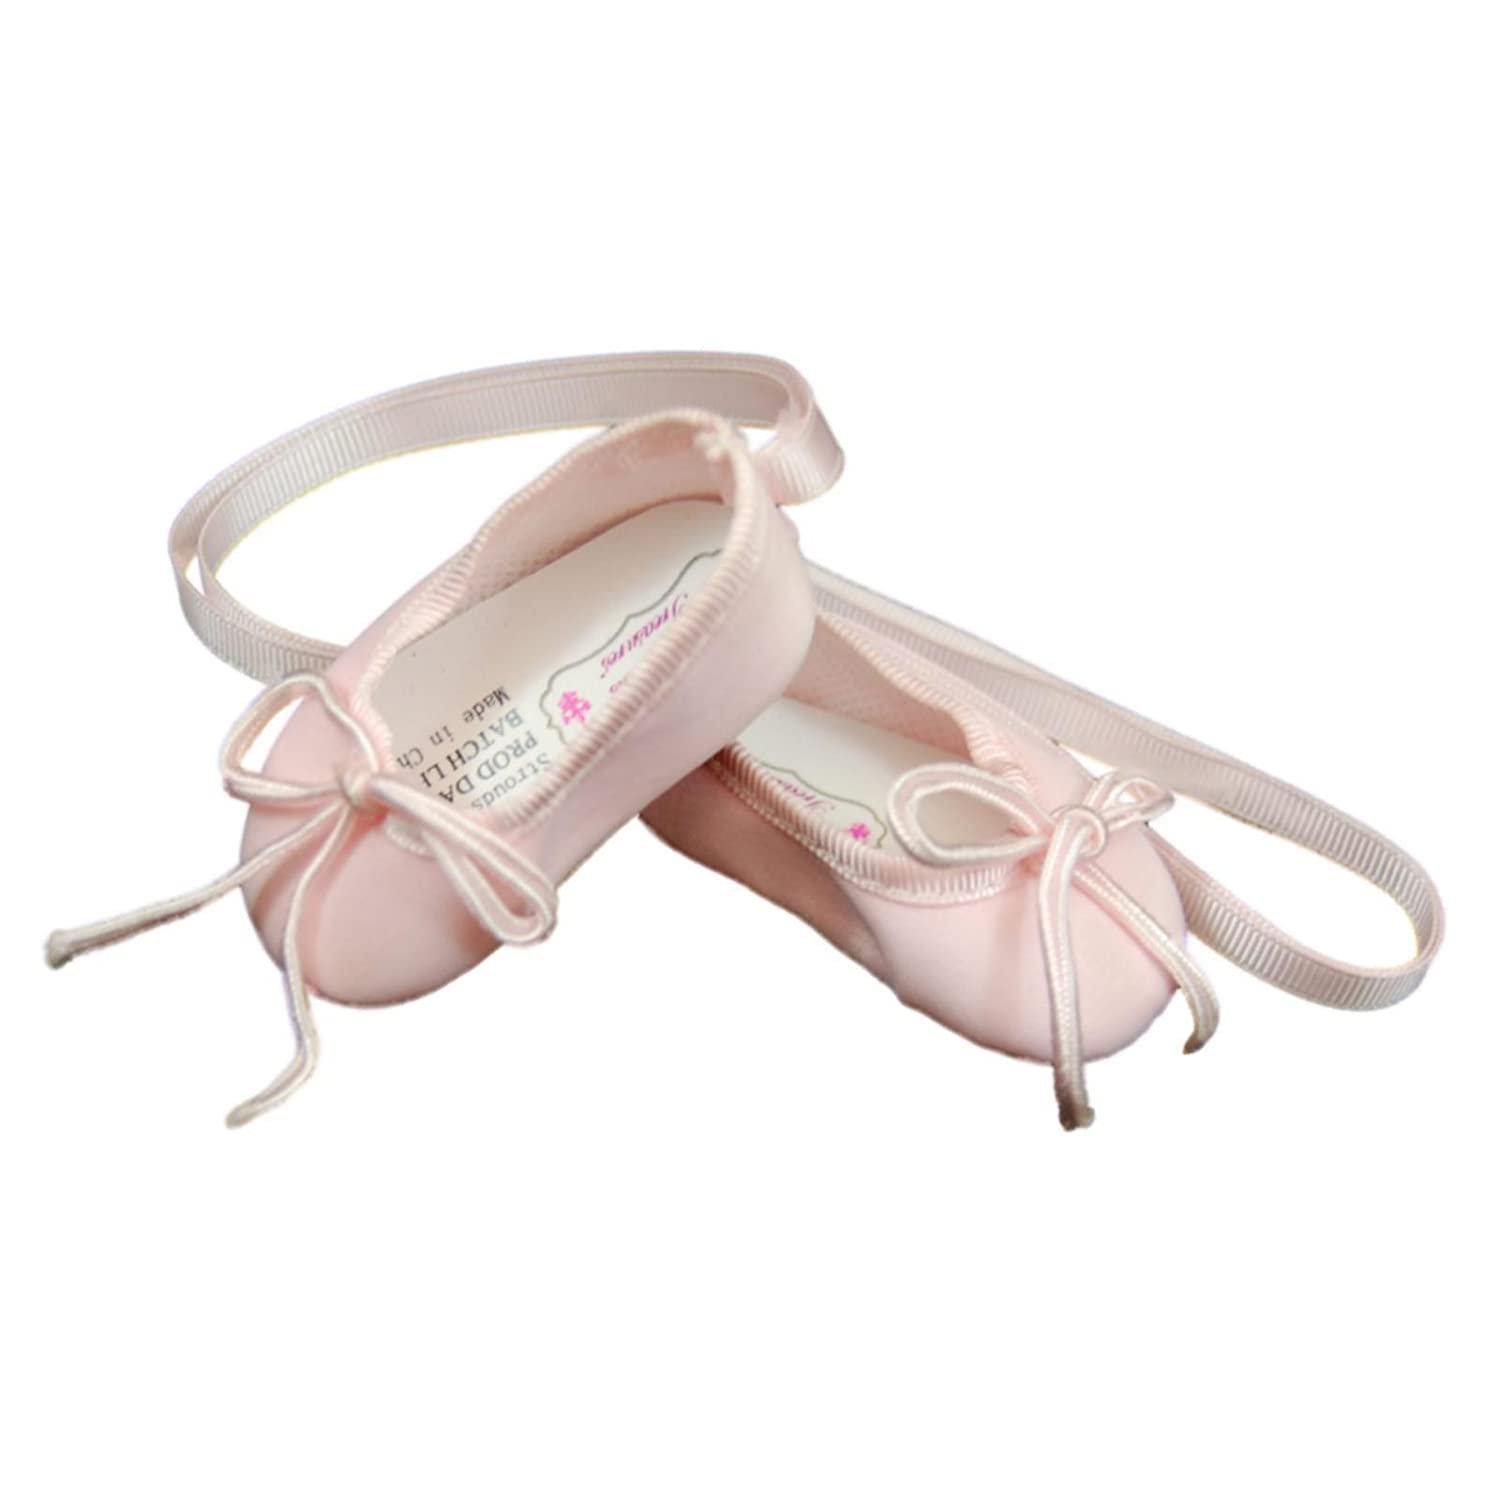 Clothing Accessories Fits American Girl Doll Clothes The Queens Treasures Pink Satin Ballet Slippers 18 Inch Ballerina Doll Shoes Complete with Authentic Shoe Box The Queen/'s Treasures AGSBLS